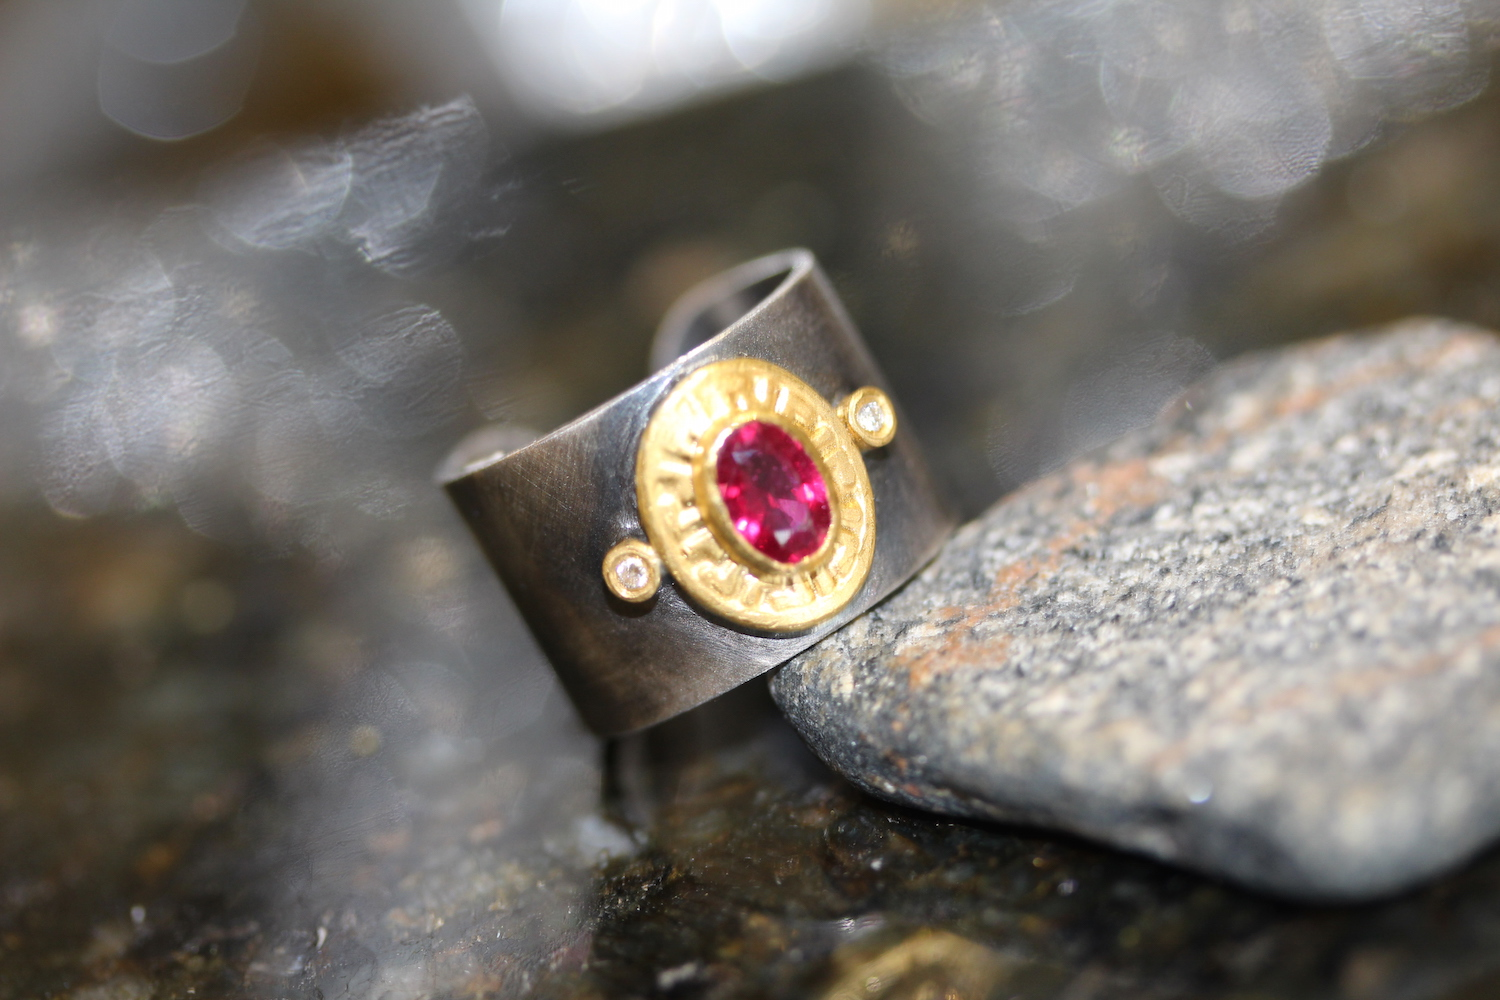 unique ring with 18k gold & ruby accents